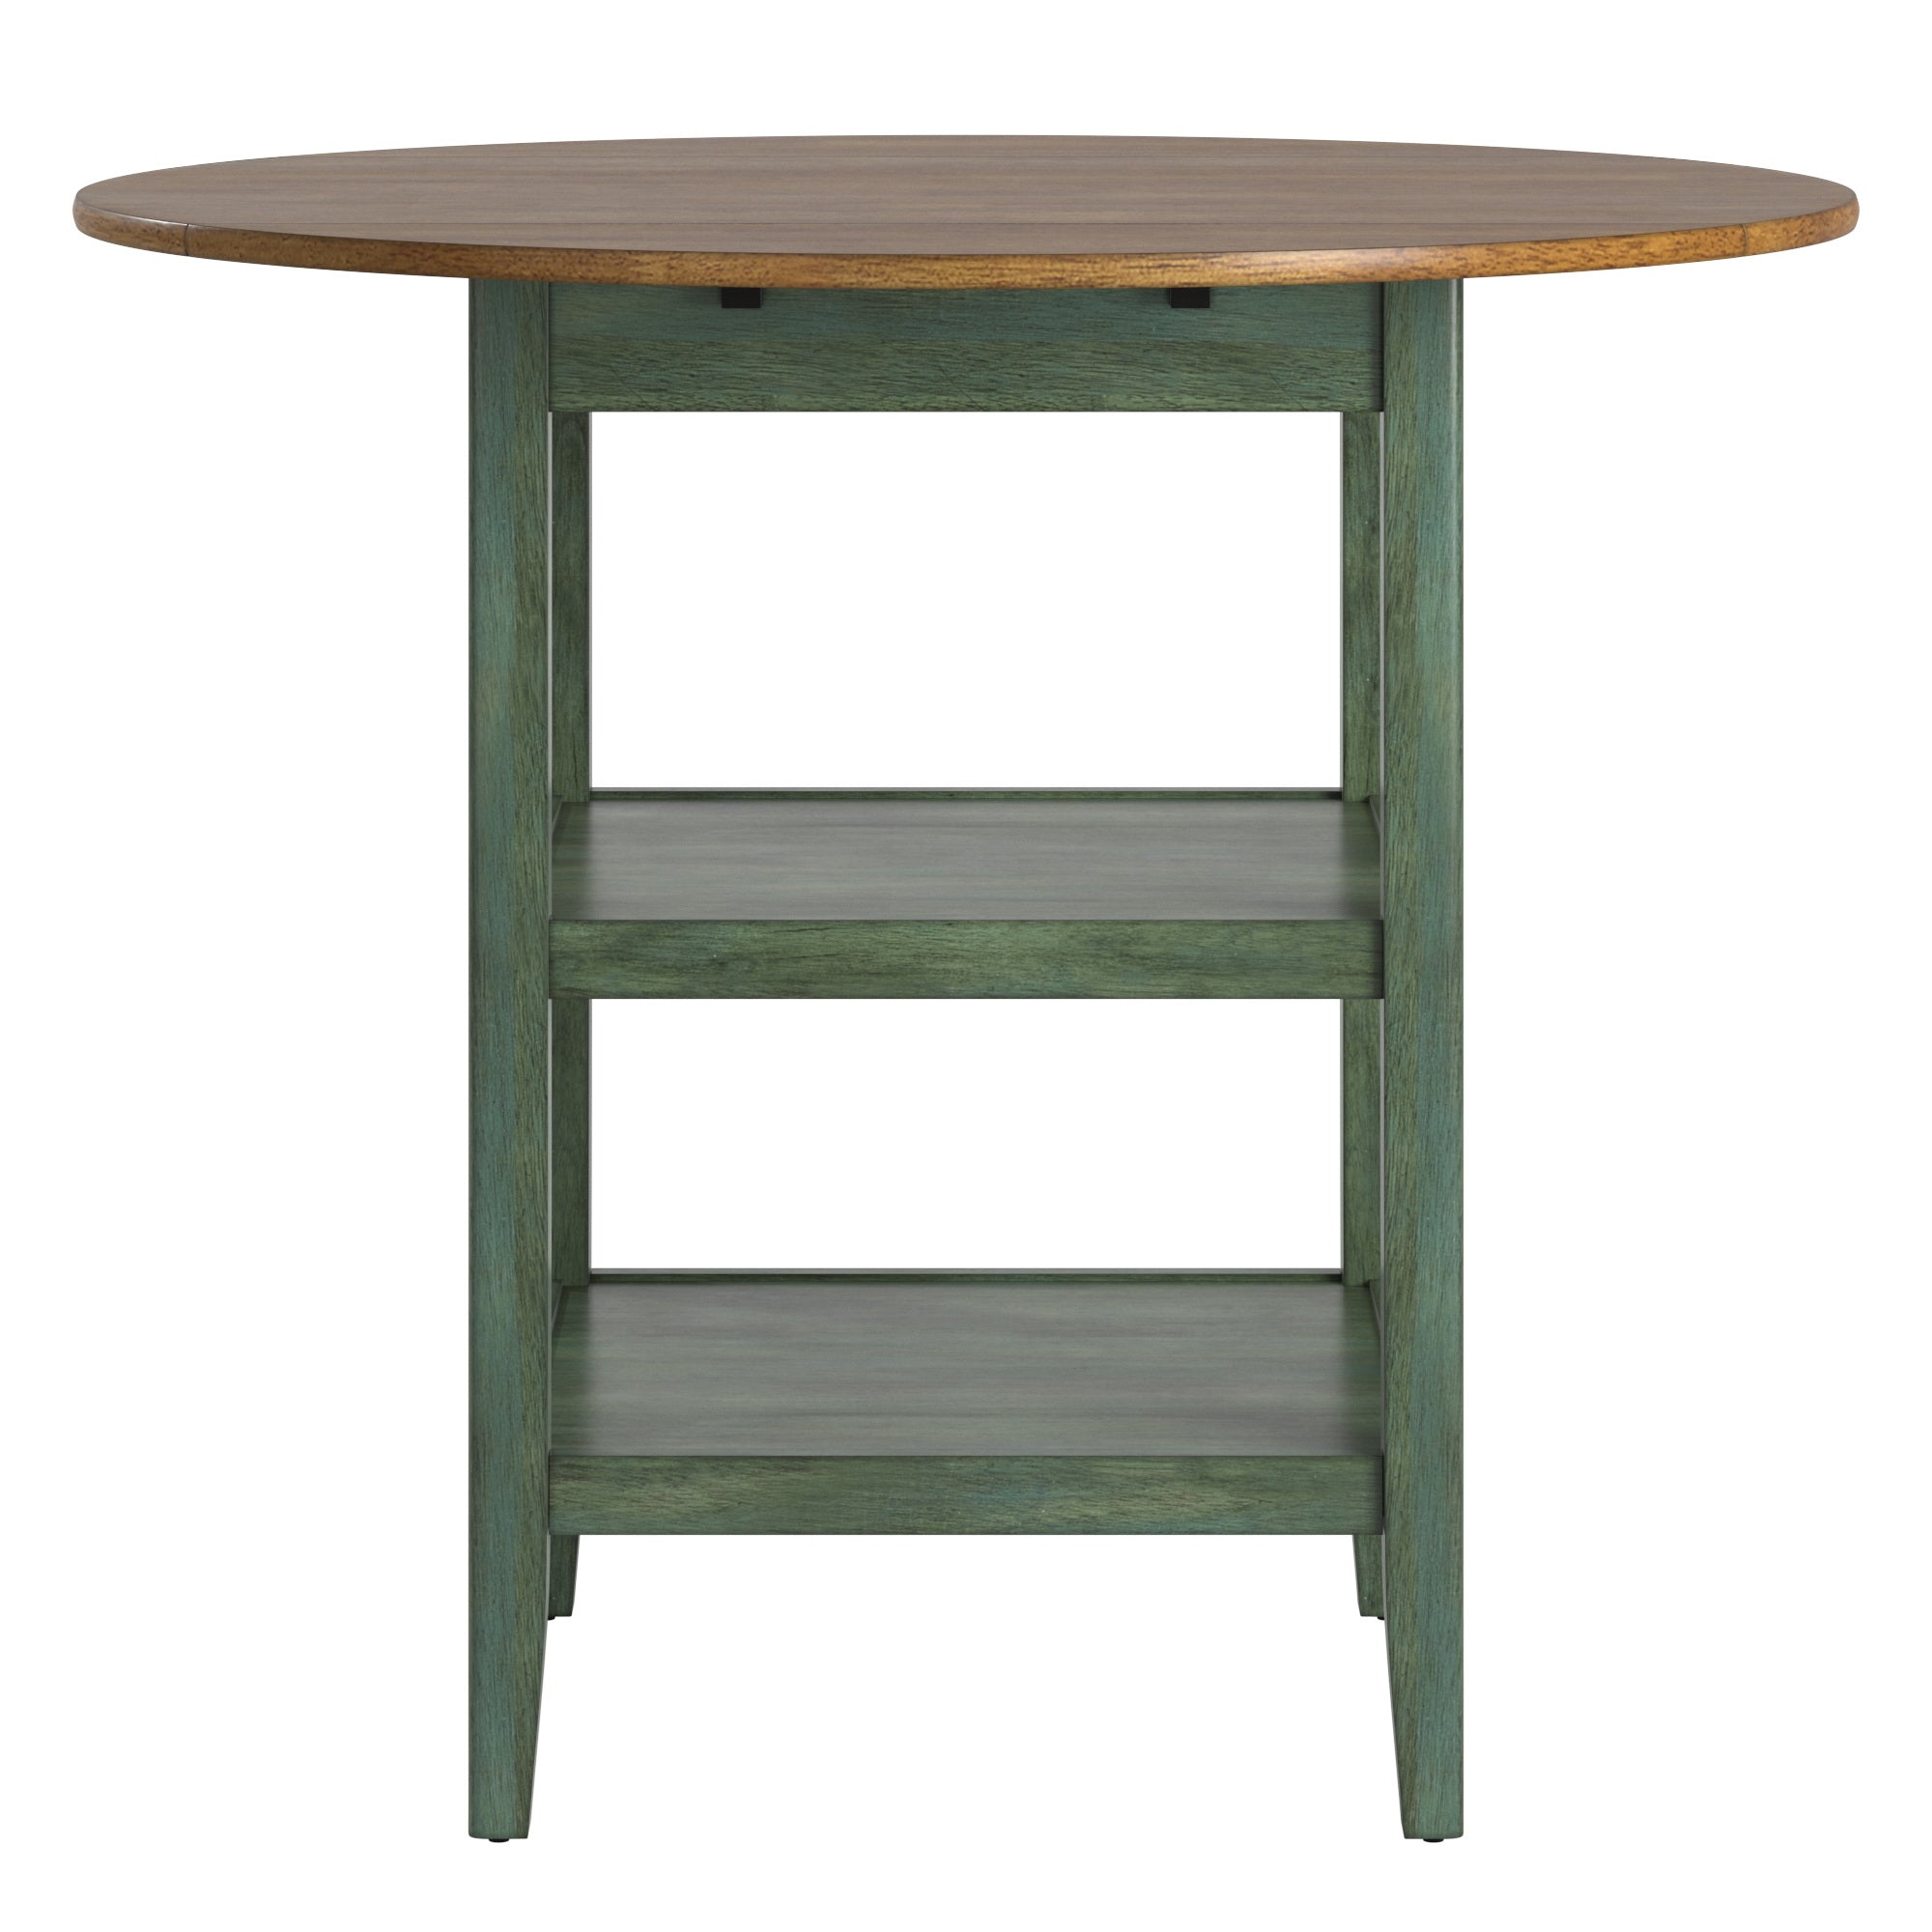 Antique Finish 2 Side Drop Leaf Round Counter Height Table - Oak and Antique Sage Finish